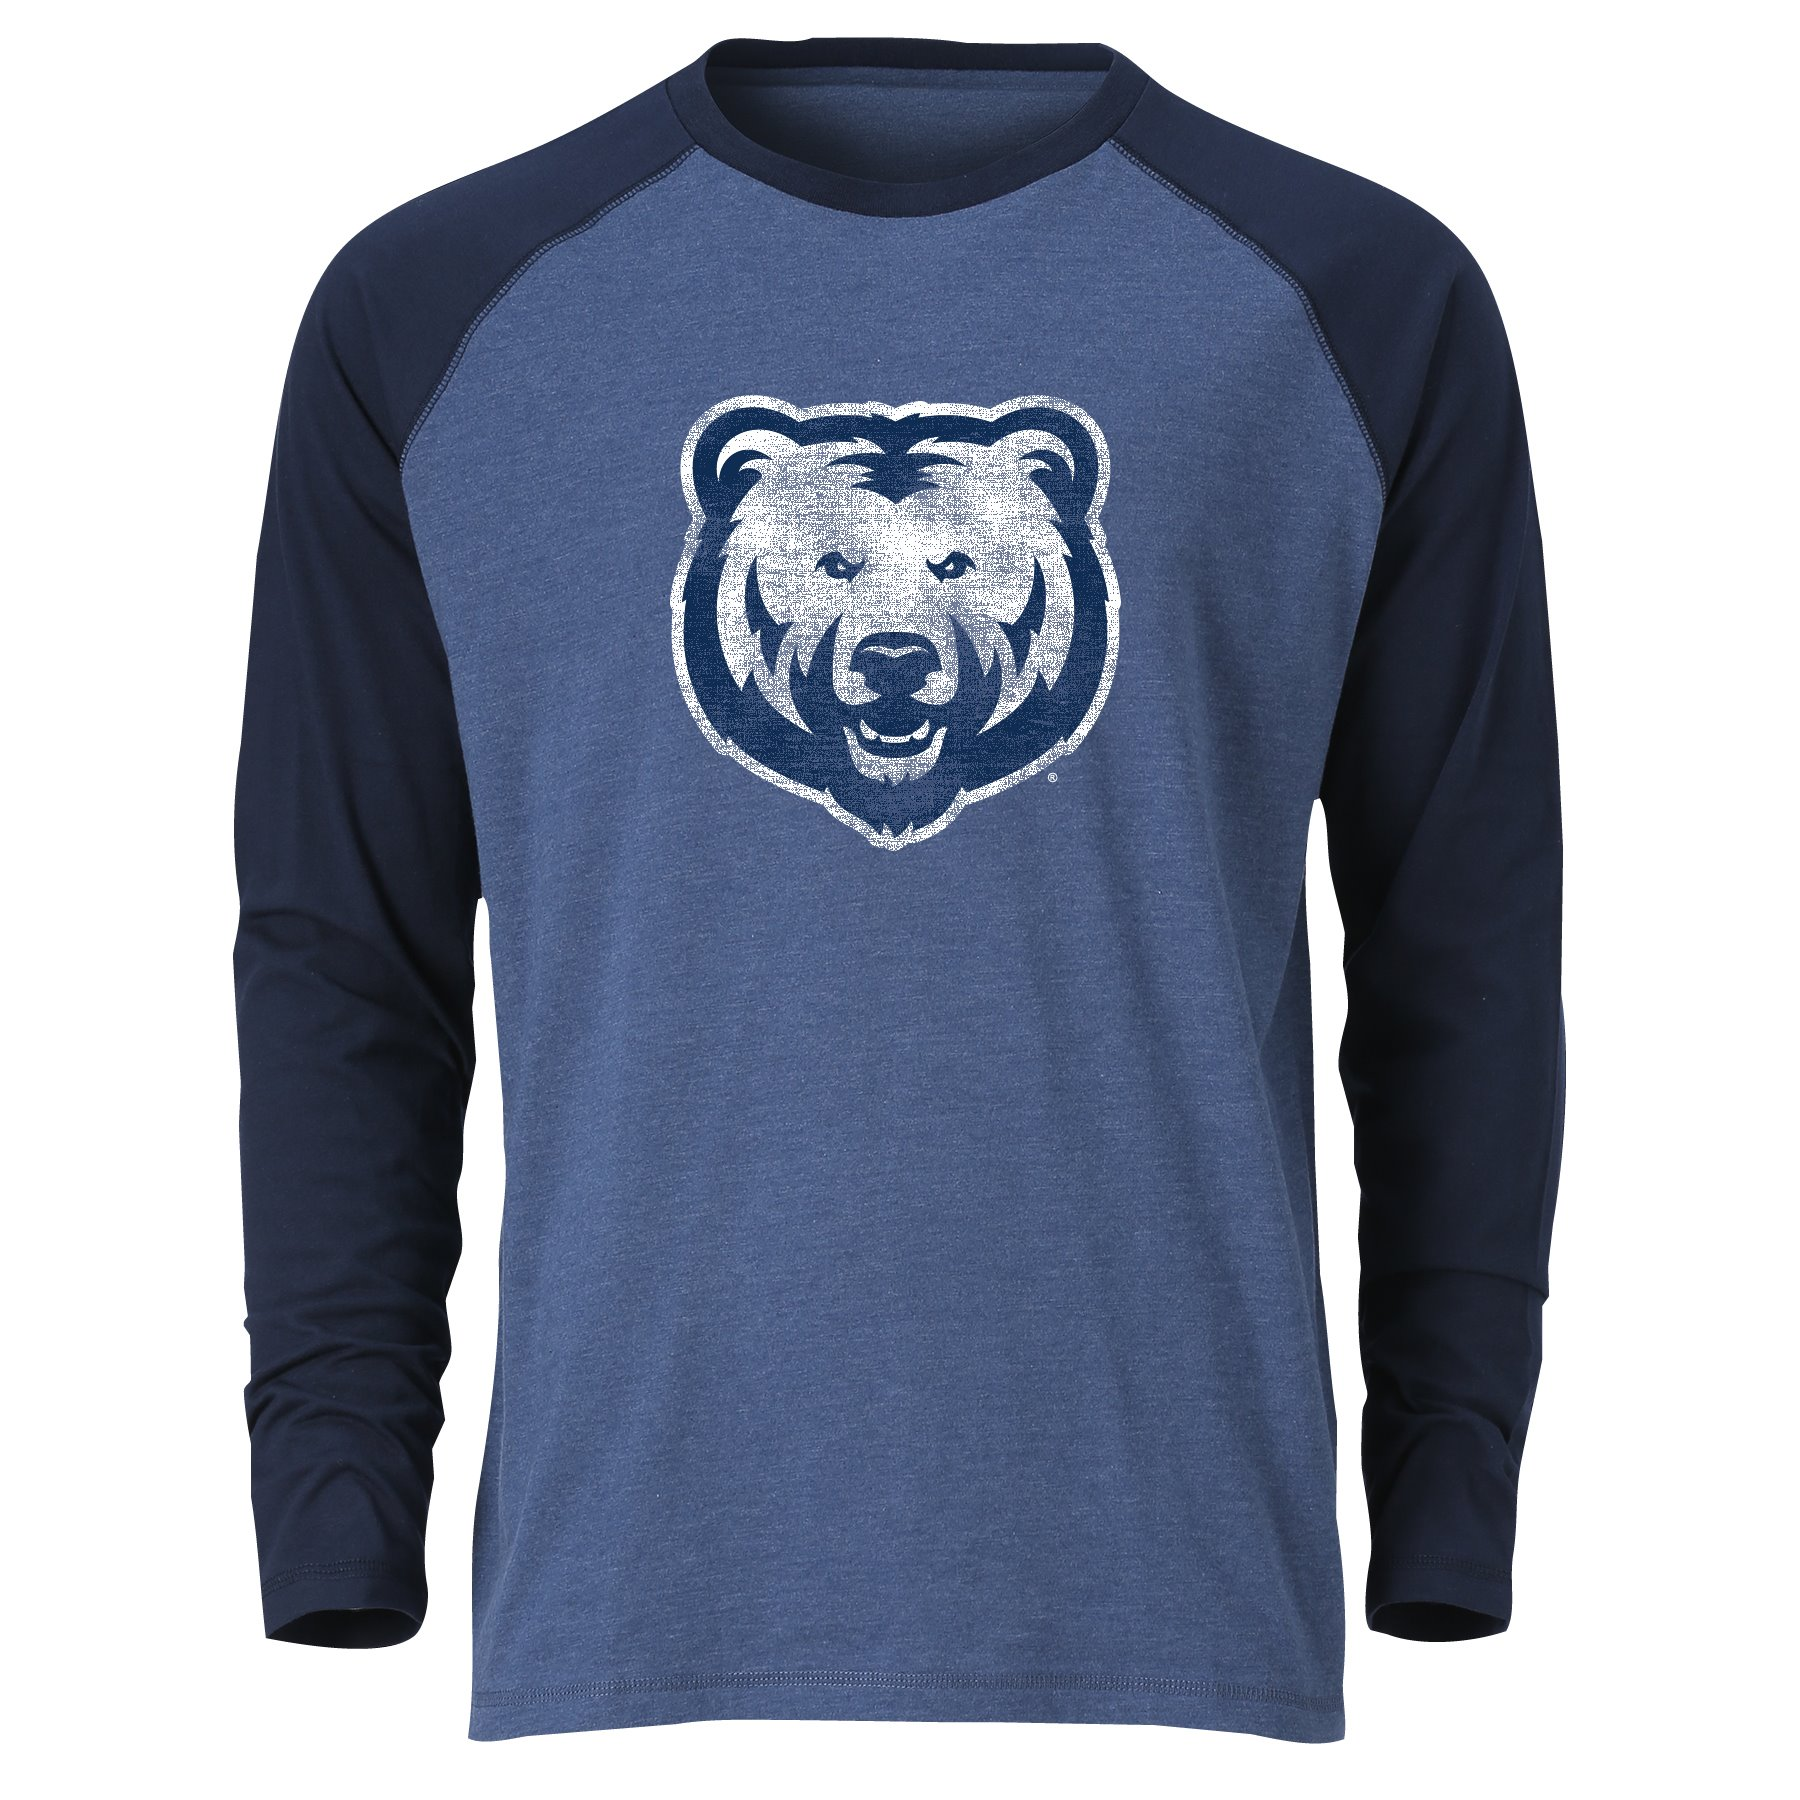 Men's Baseball Long Sleeve Shirt